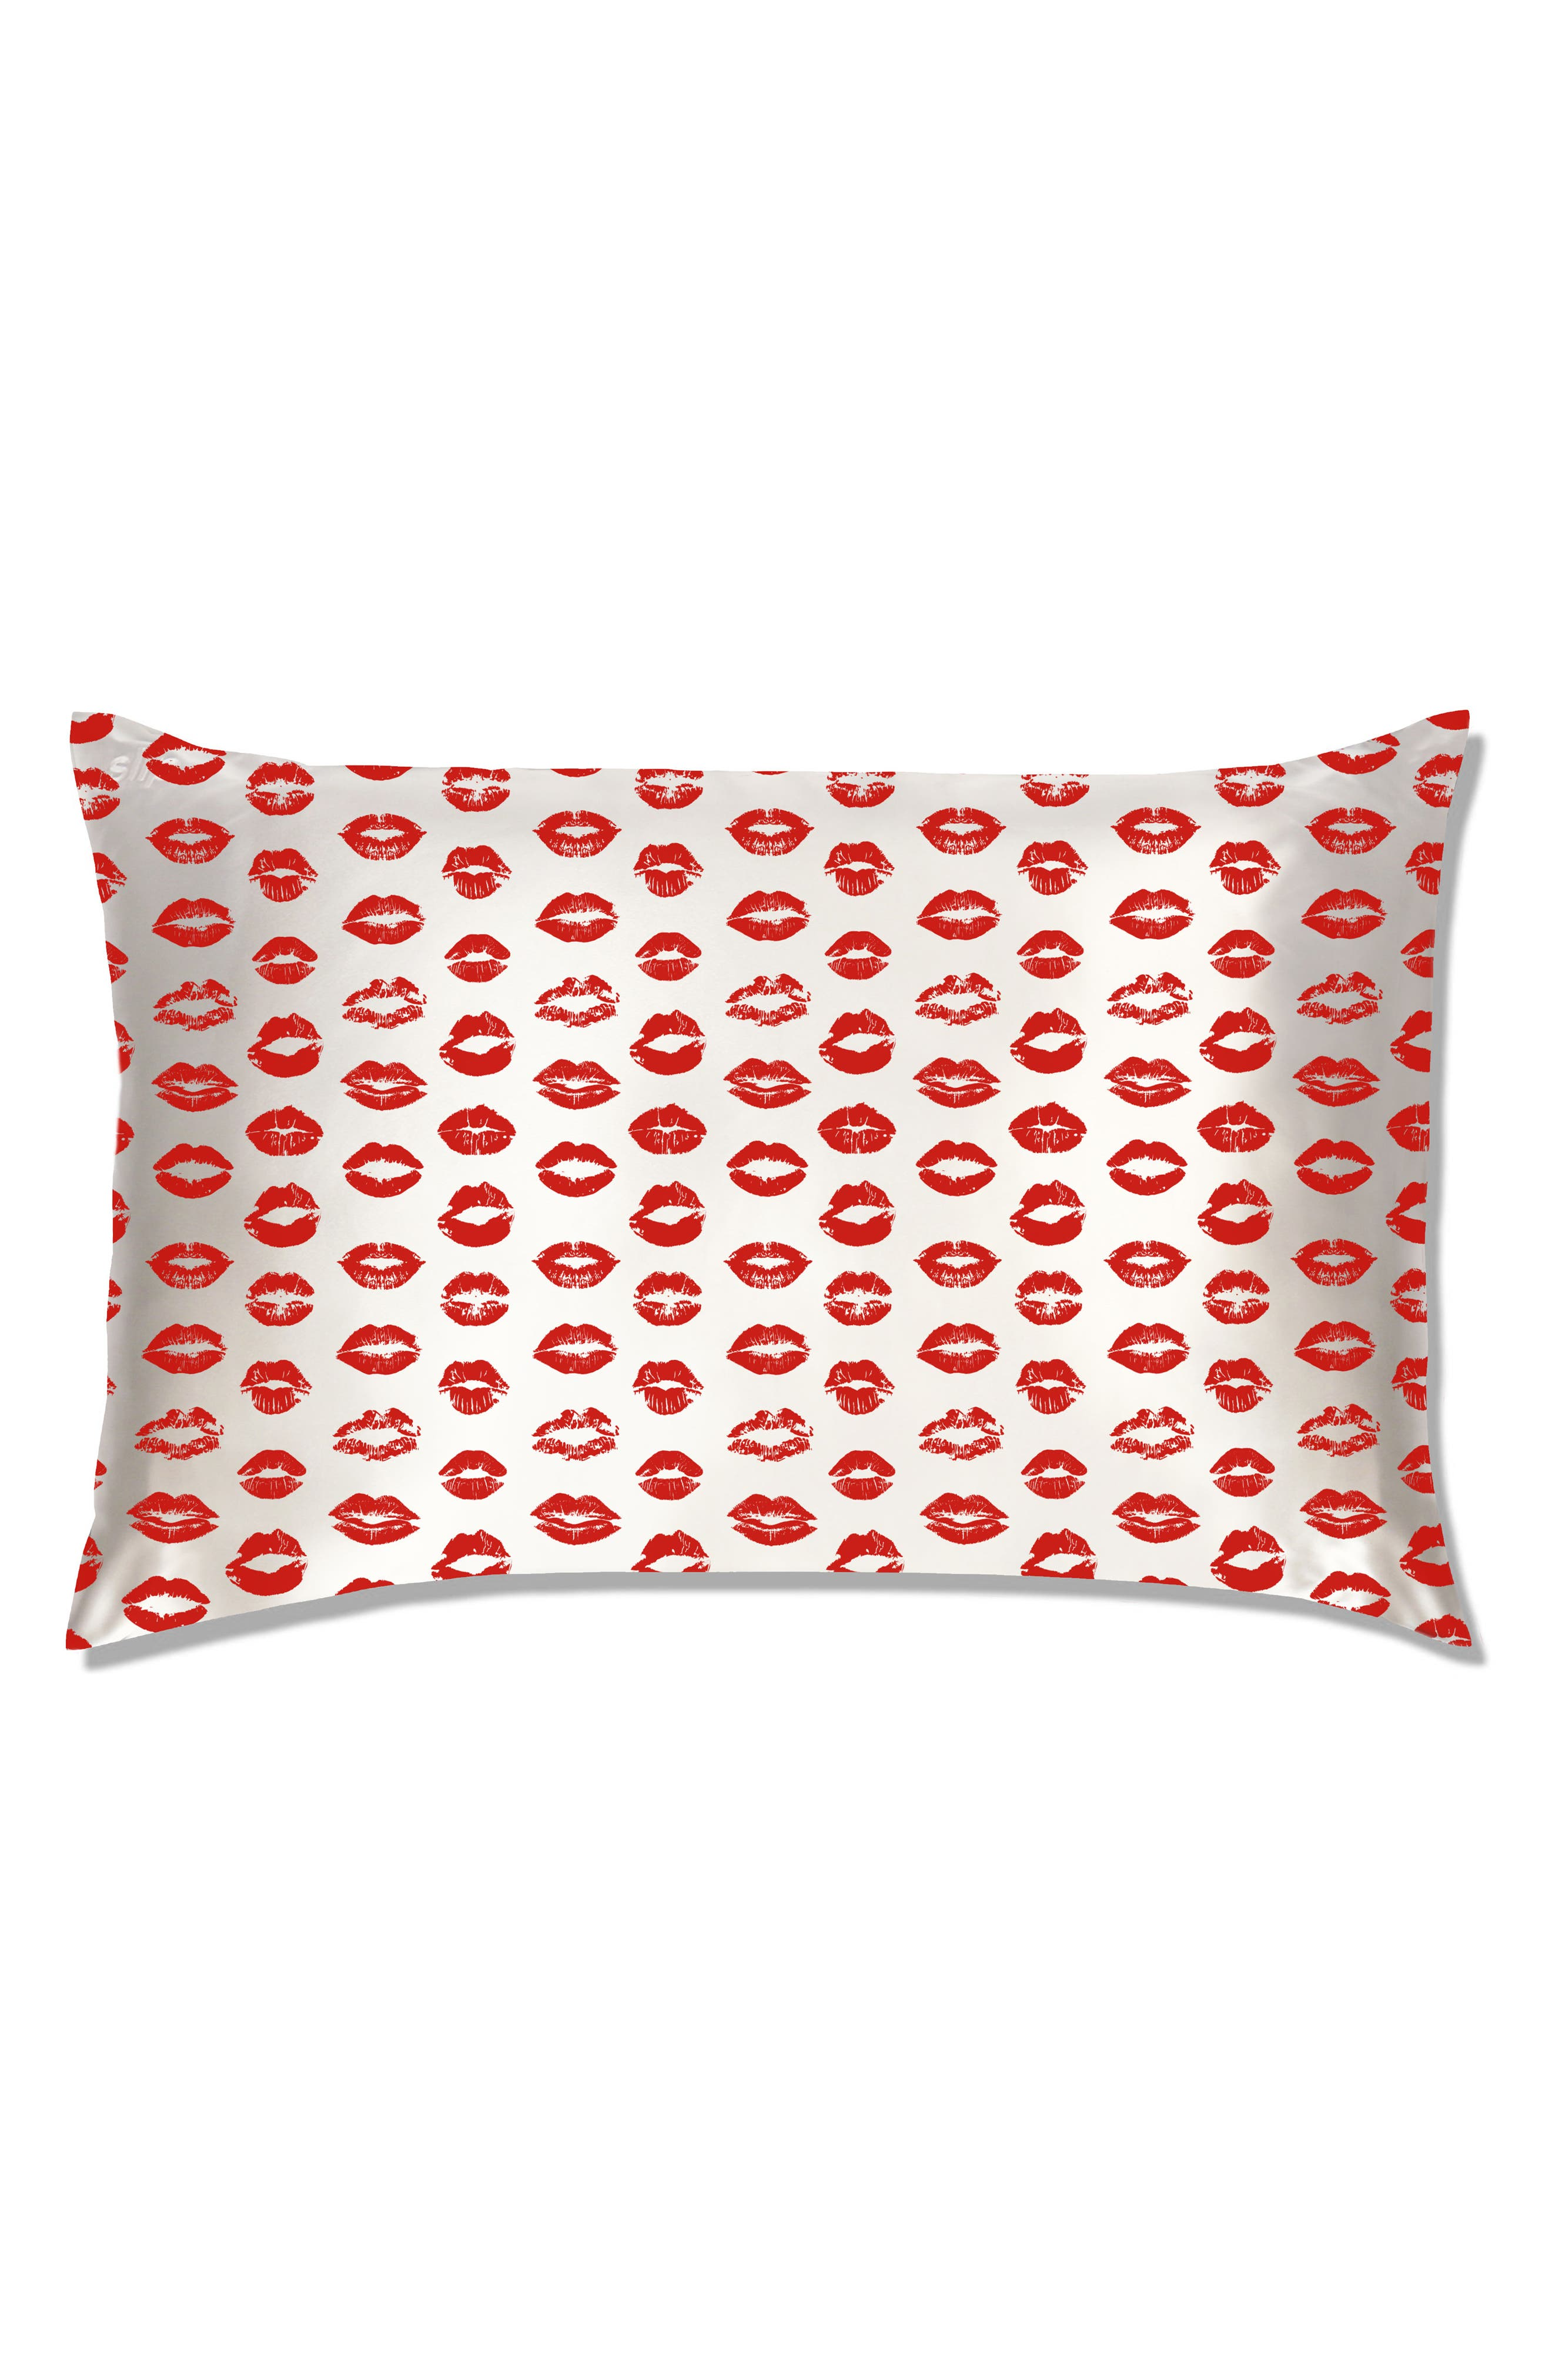 slip<sup>™</sup> for beauty sleep Slipsilk<sup>™</sup> Red Kisses Pure Silk Pillowcase,                             Alternate thumbnail 2, color,                             Red Kisses